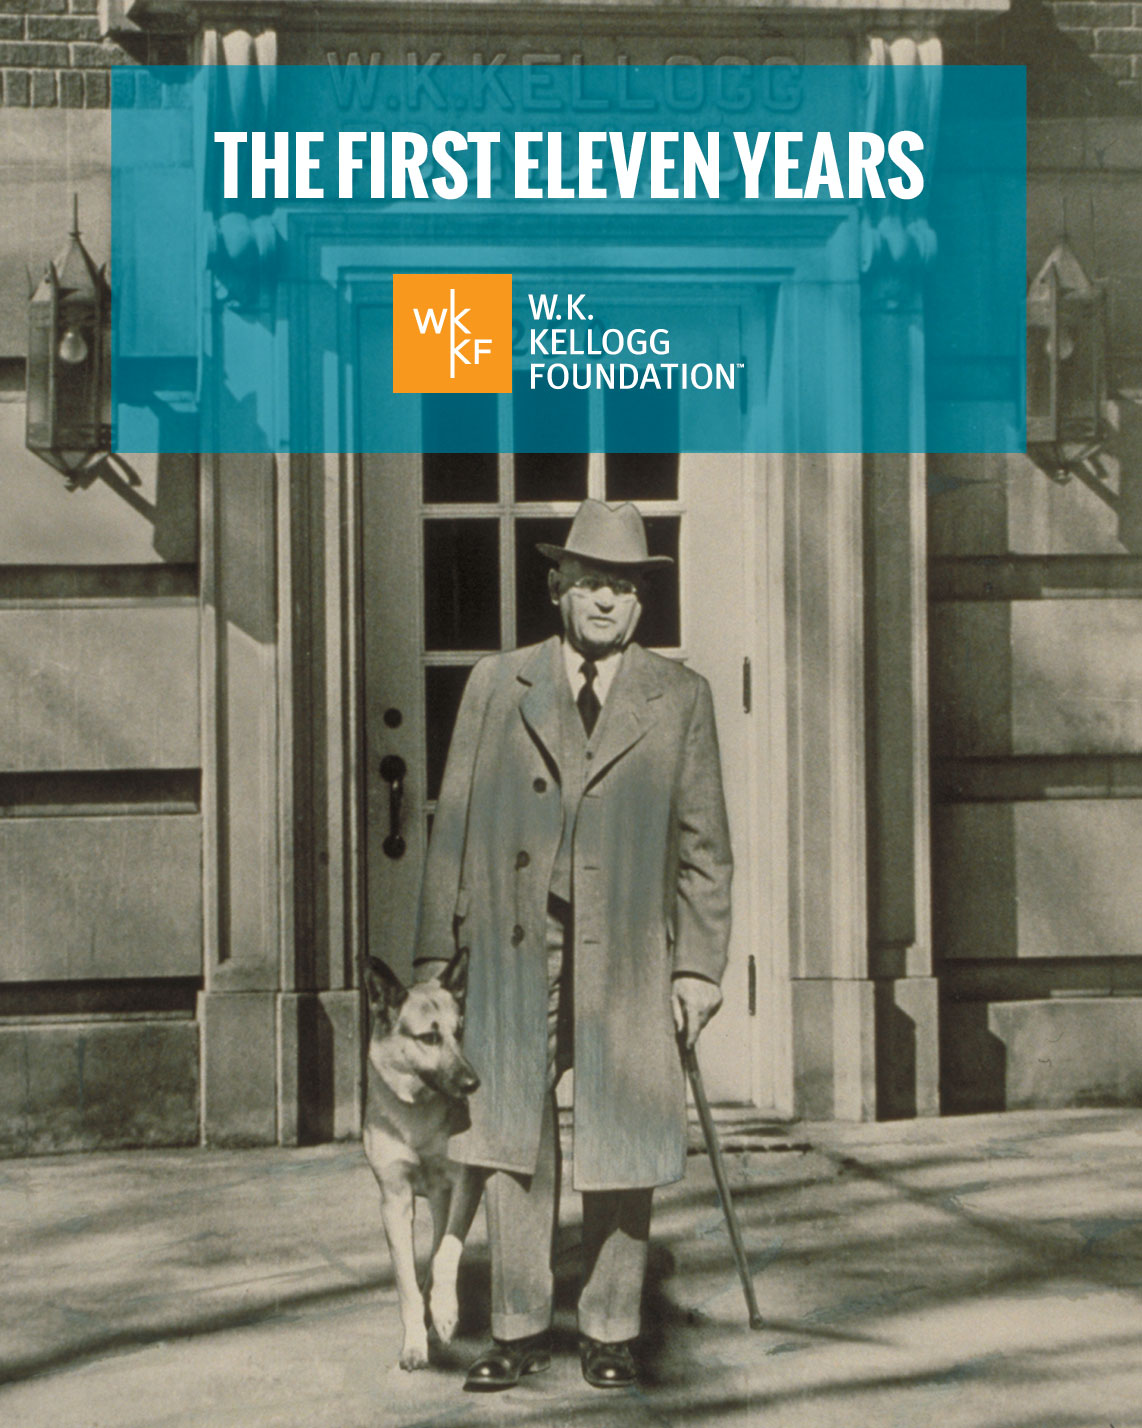 The First Eleven Years - W.K. Kellogg Foundation